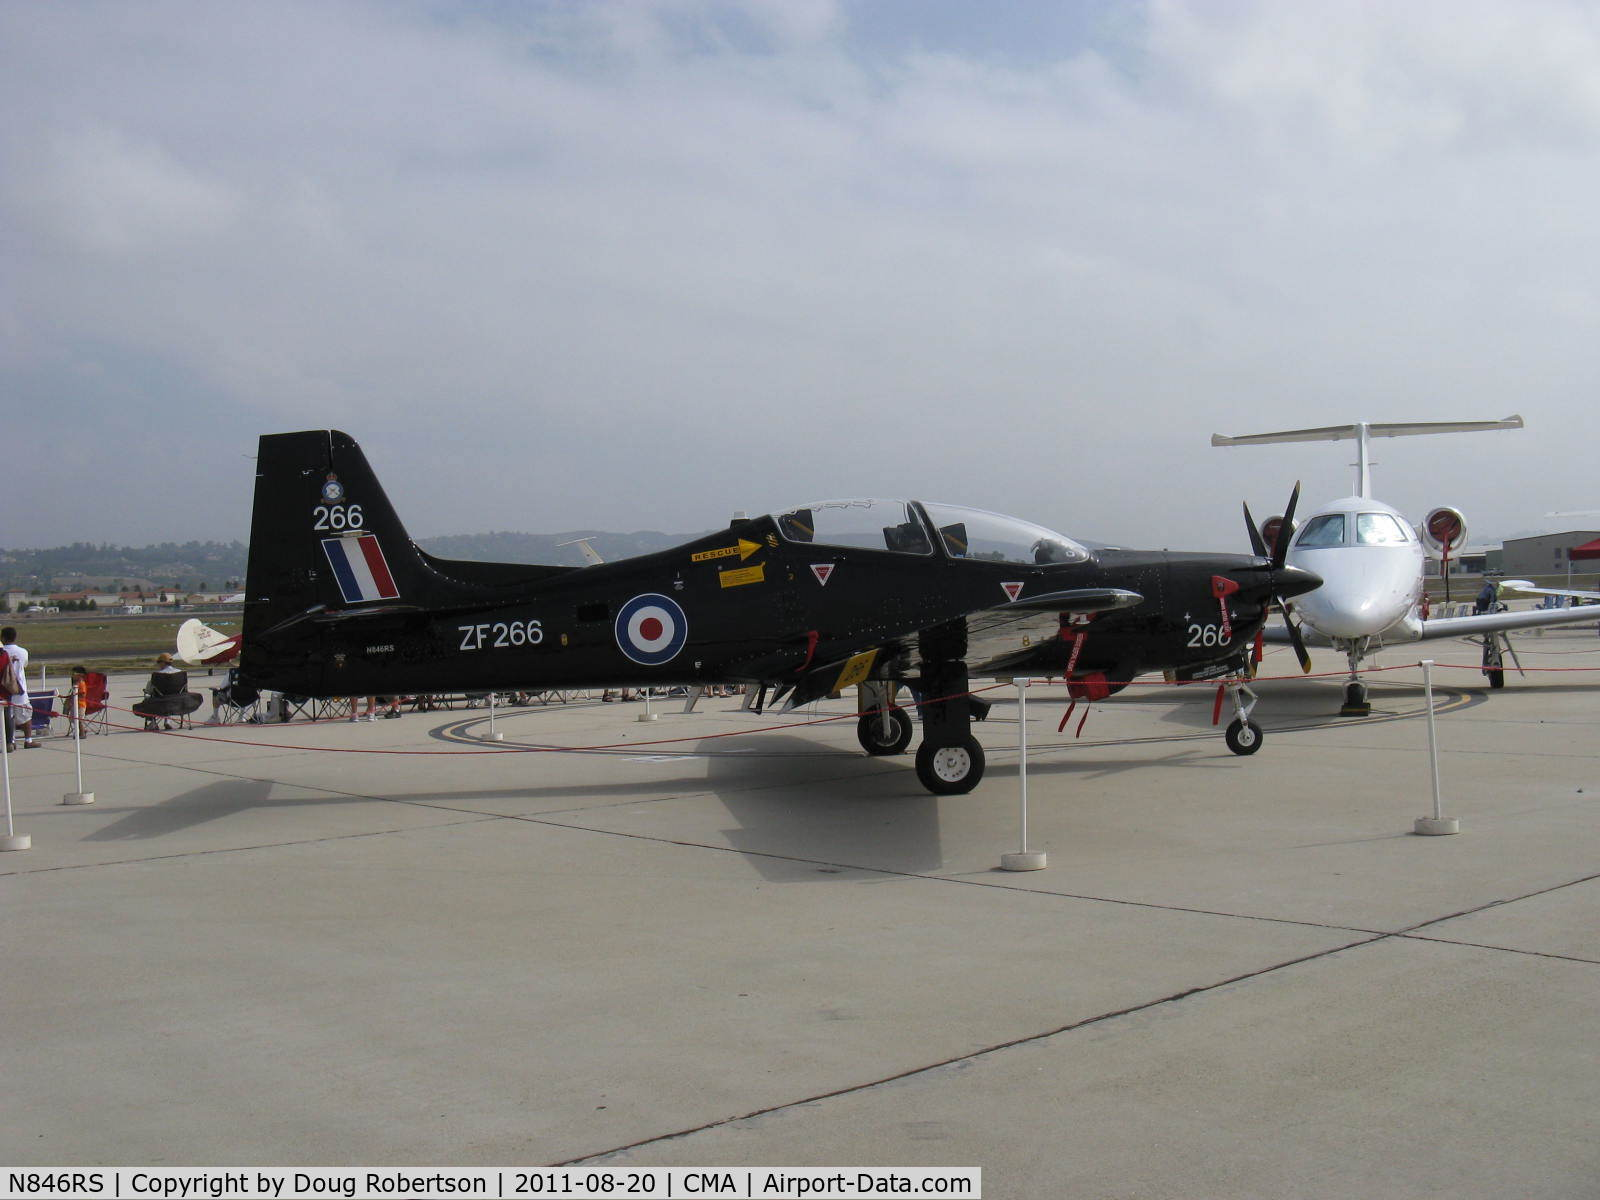 N846RS, 1990 Short S-312 Tucano T1 C/N S056/T50, Short Bros. PLC S312 TUCANO T1 Mk.1, one Garrett TPE331-12B Turboprop 1,100 shp in RAF livery, Martin-Baker MB 8LC Ejection Seats